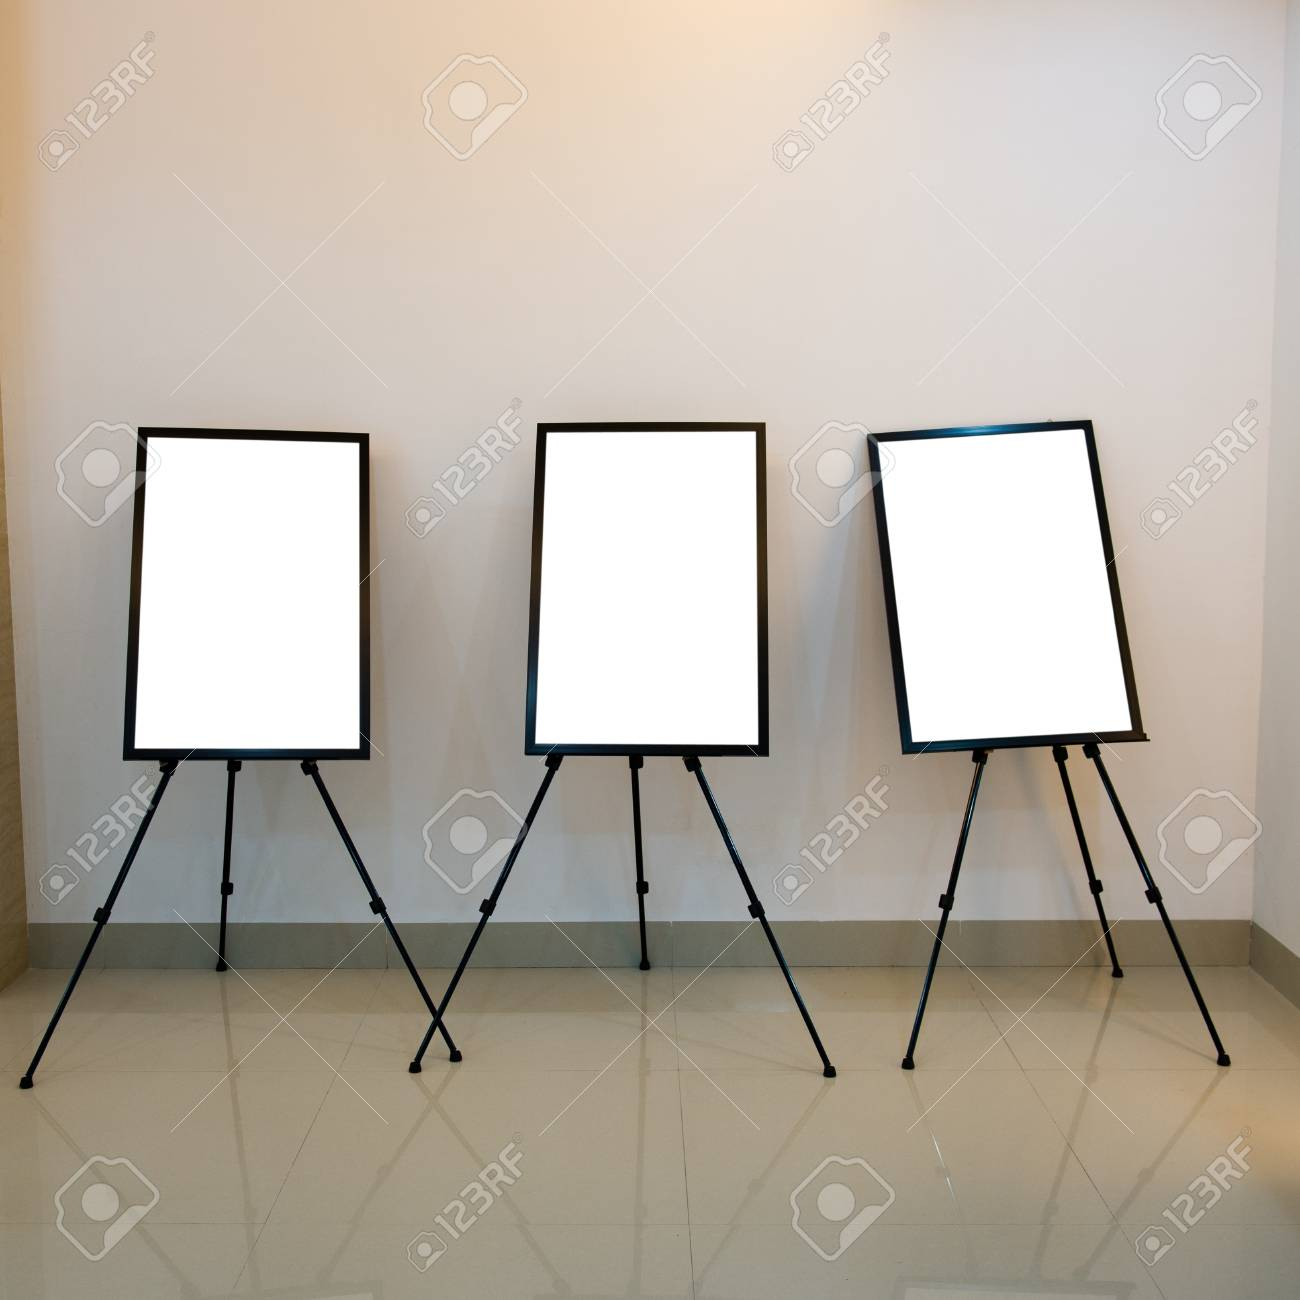 Contemporary interior with blank frames for your exhibition. Stock Photo - 18941801